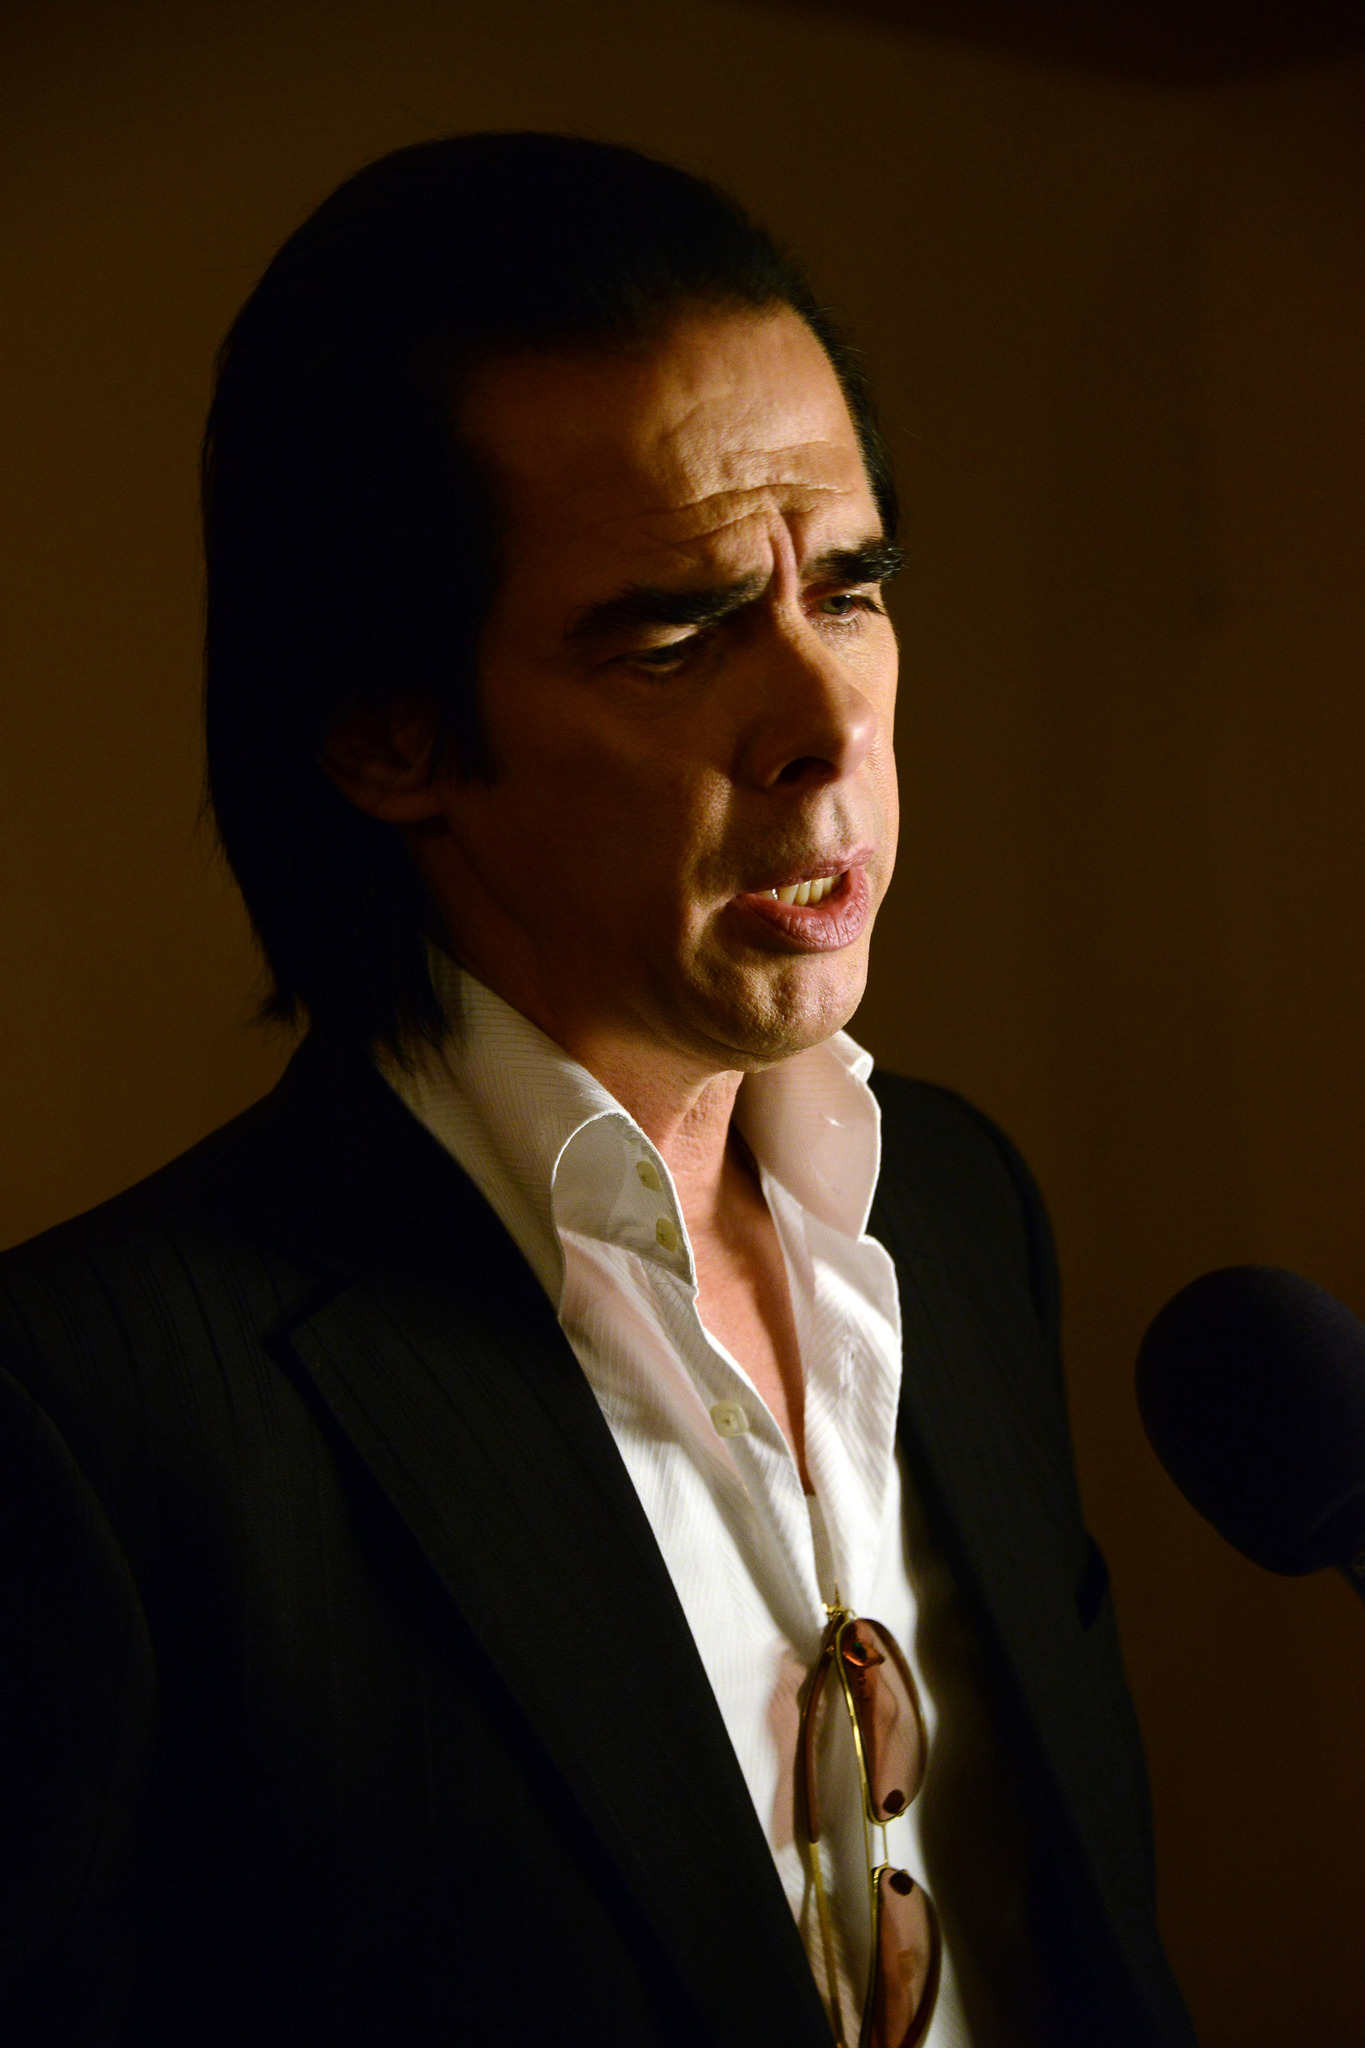 Nick Cave at an event for 20,000 Days on Earth (2014)